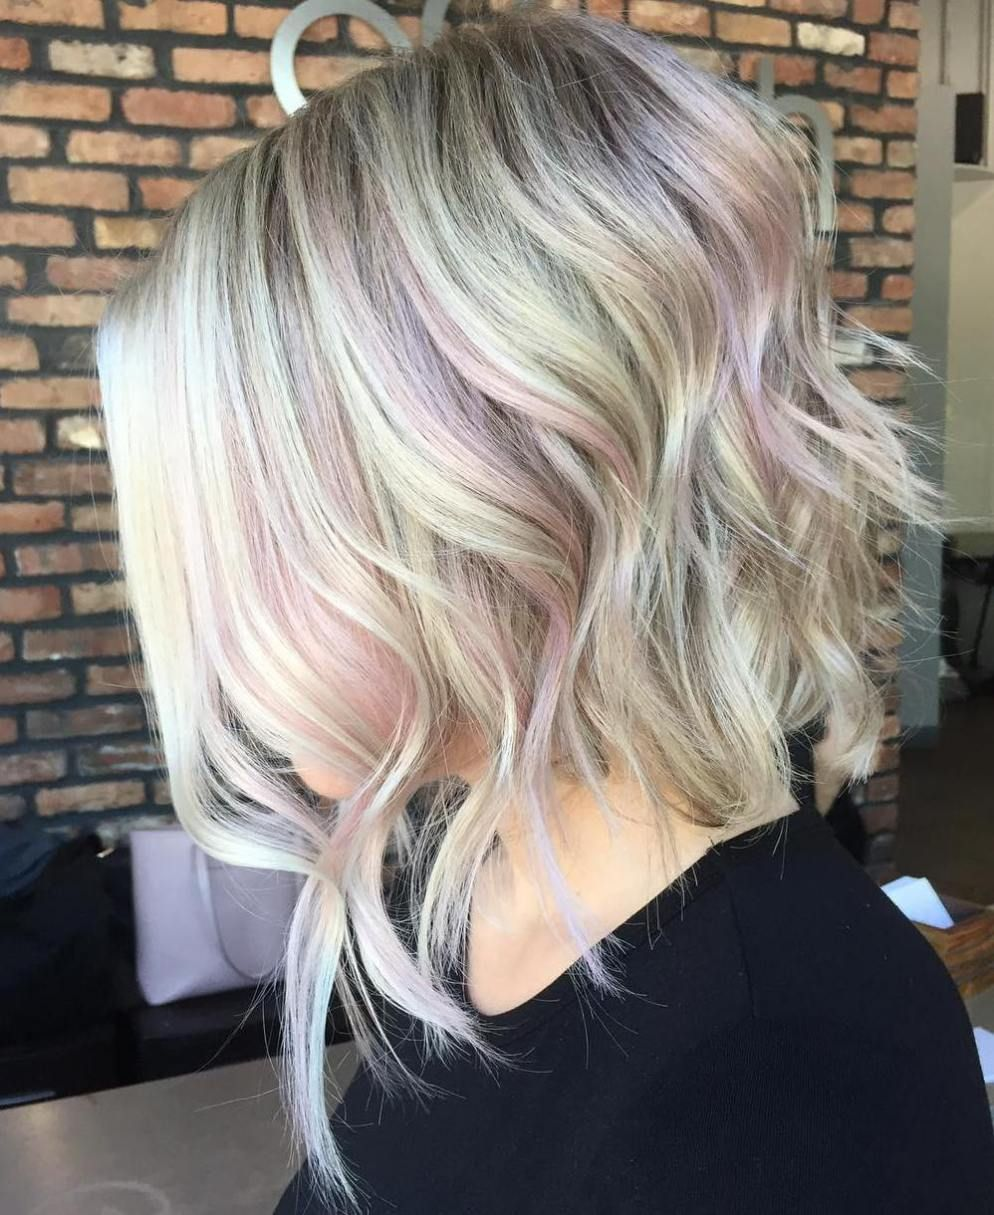 40 Ideas Of Pink Highlights For Major Inspiration Pink Blonde Hair Blonde Hair With Pink Highlights Blonde With Pink